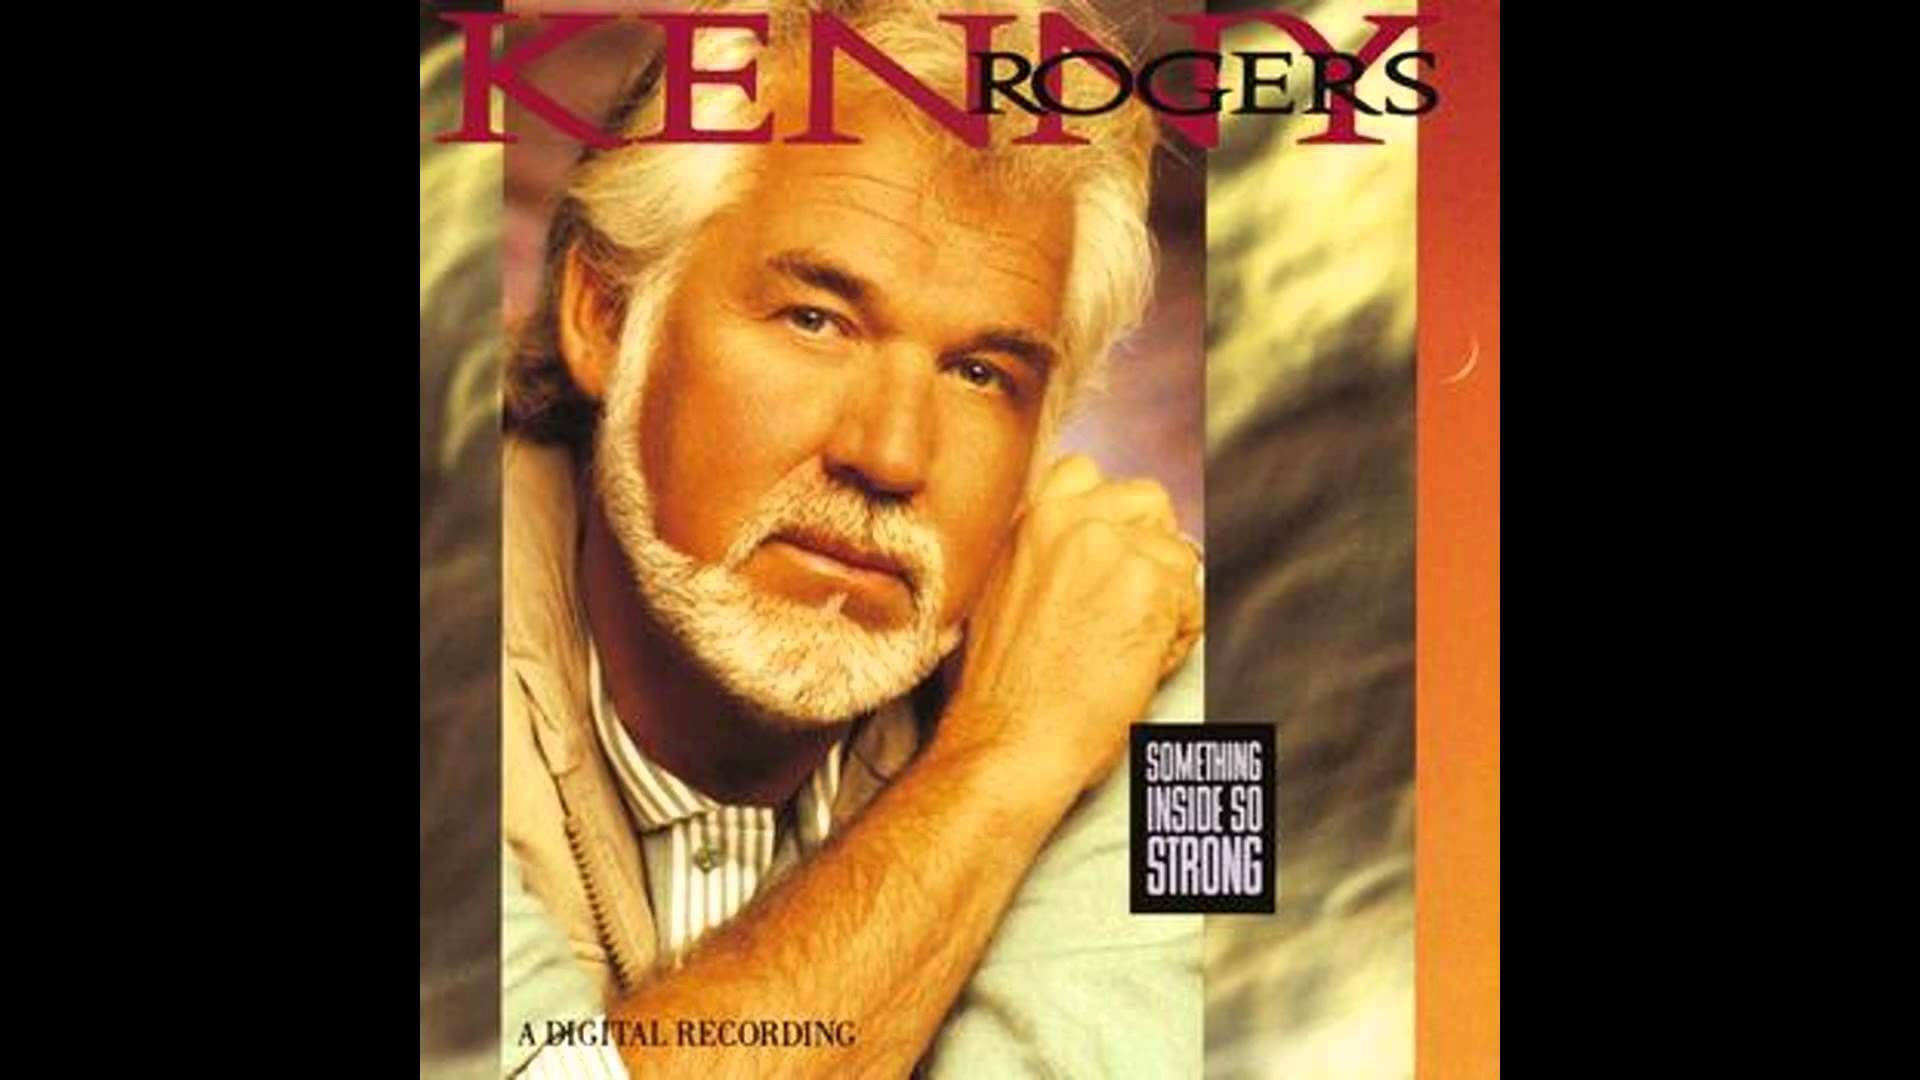 Kenny Rogers & Anne Murray - If I Ever Fall In Love Again | music ...